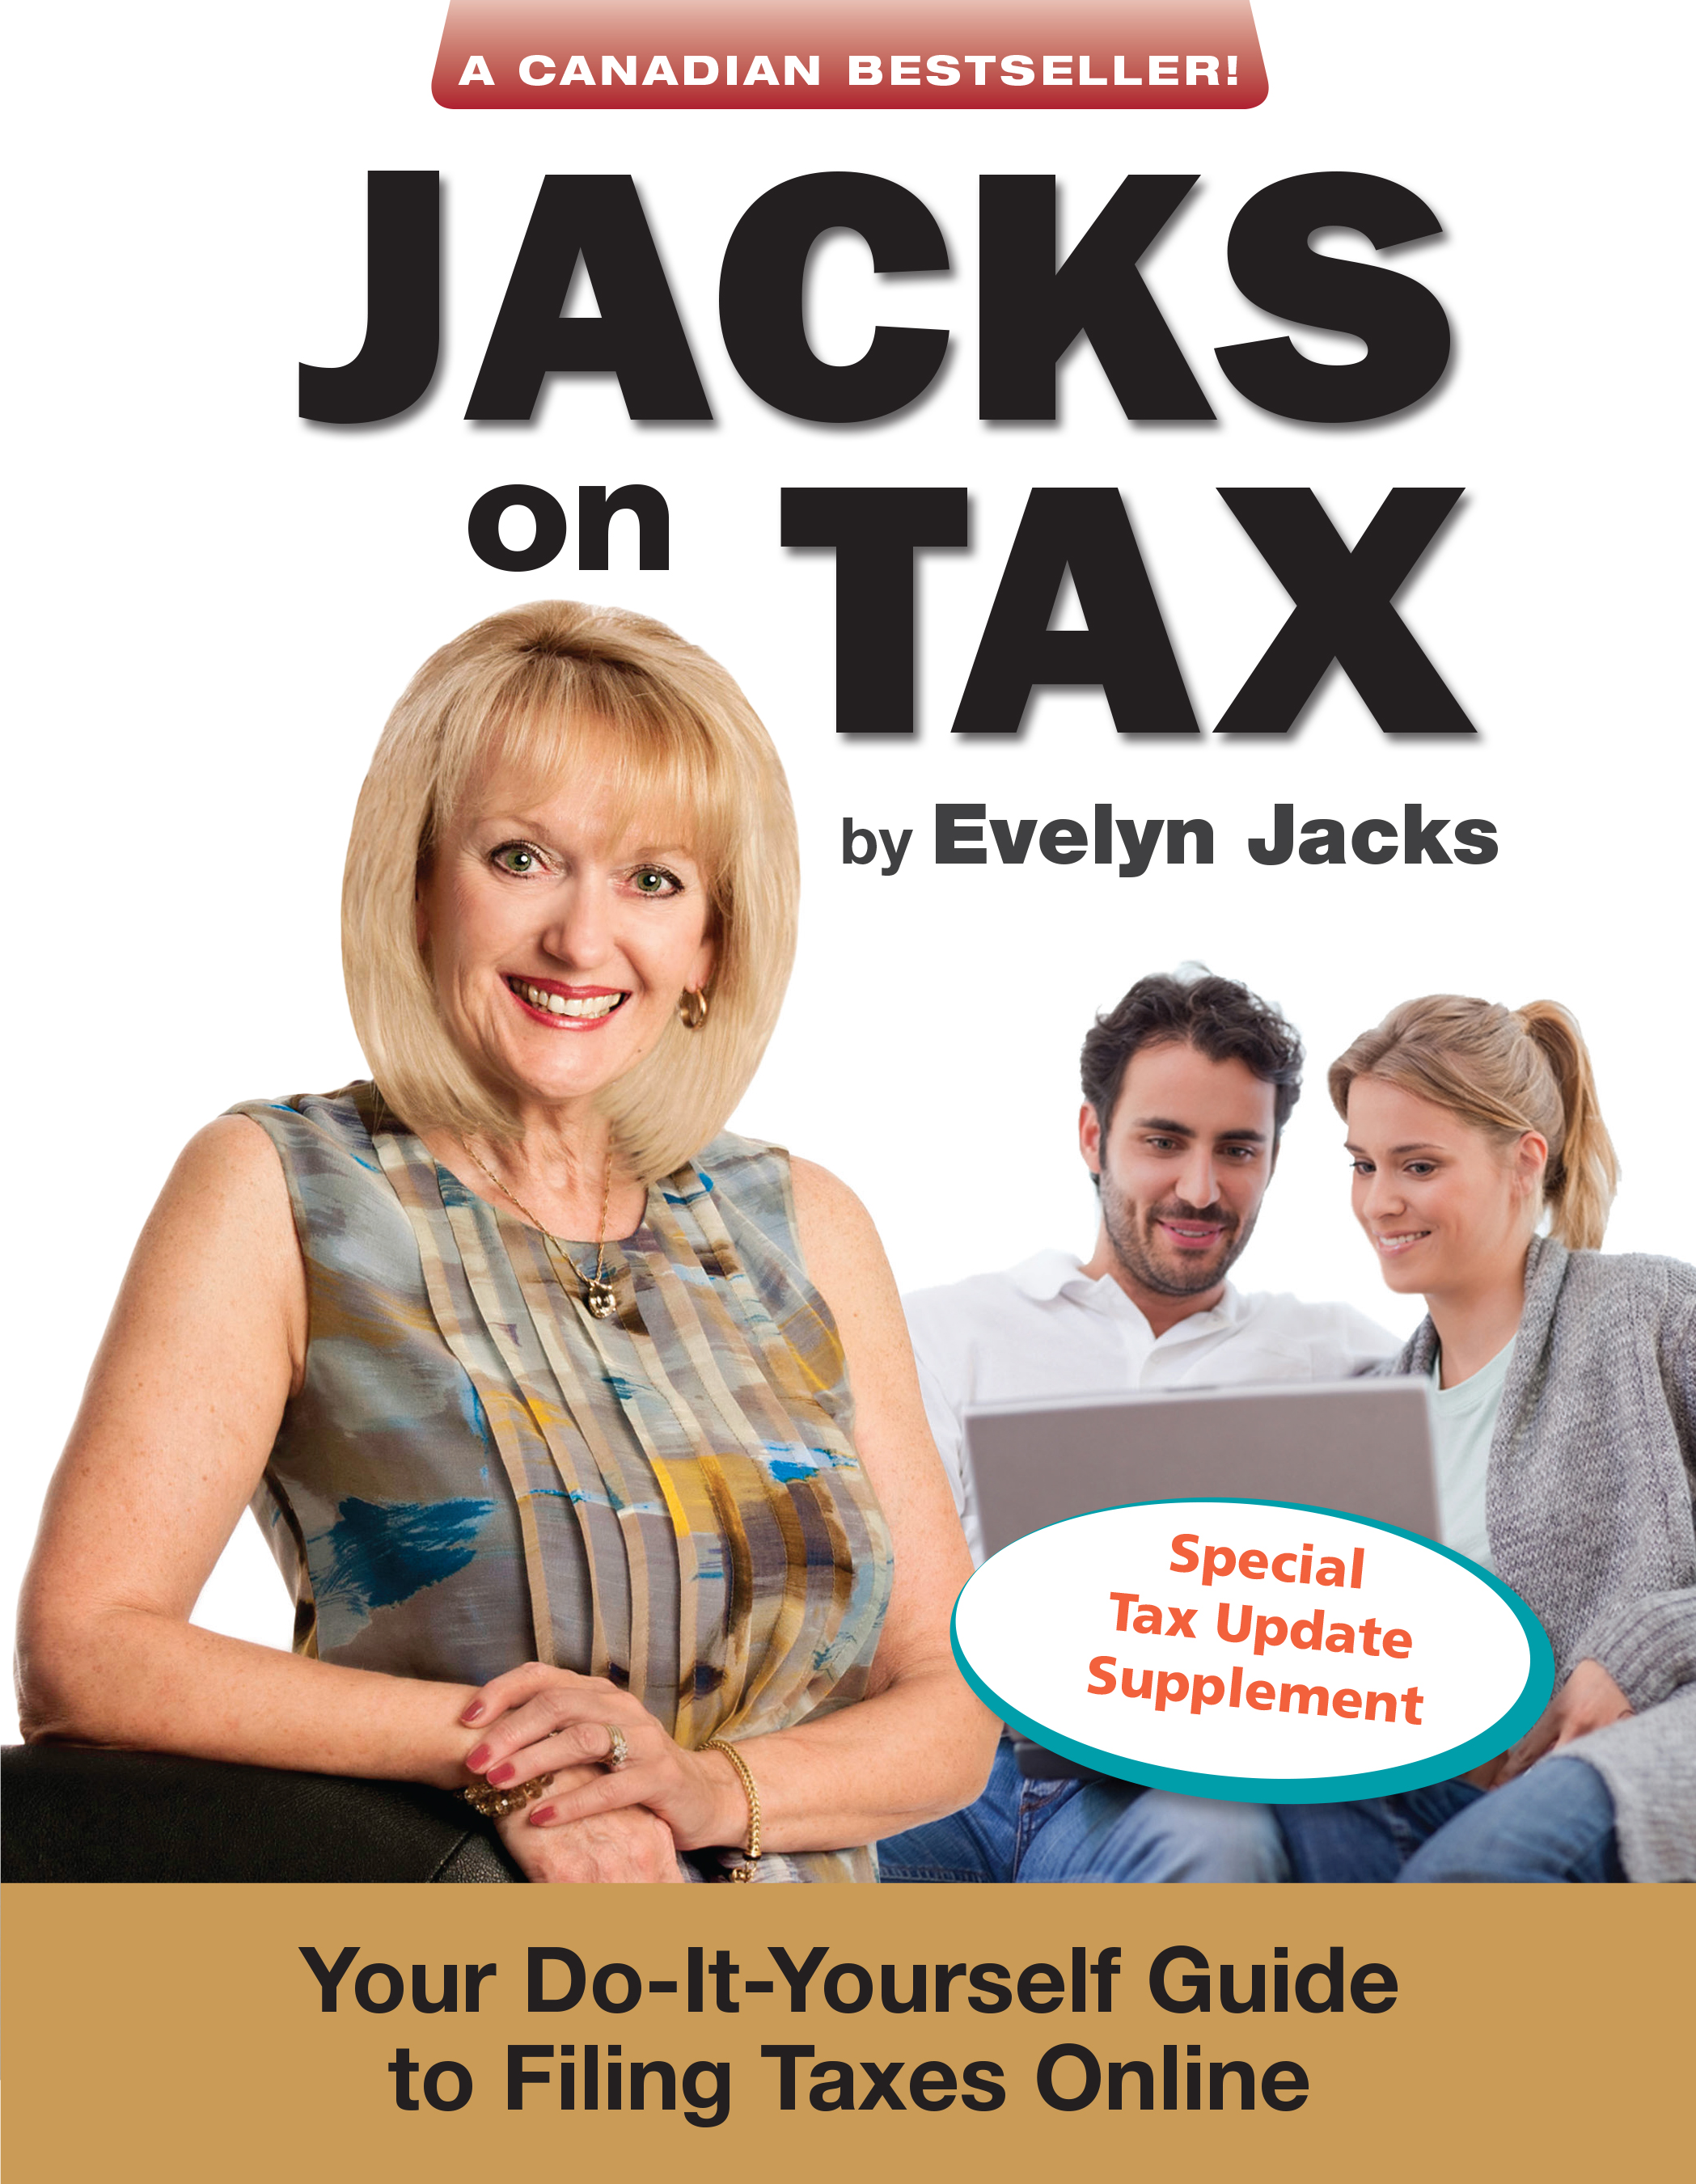 Knowledge bureau purchase jacks on tax today and receive our special tax update supplement absolutely free solutioingenieria Image collections